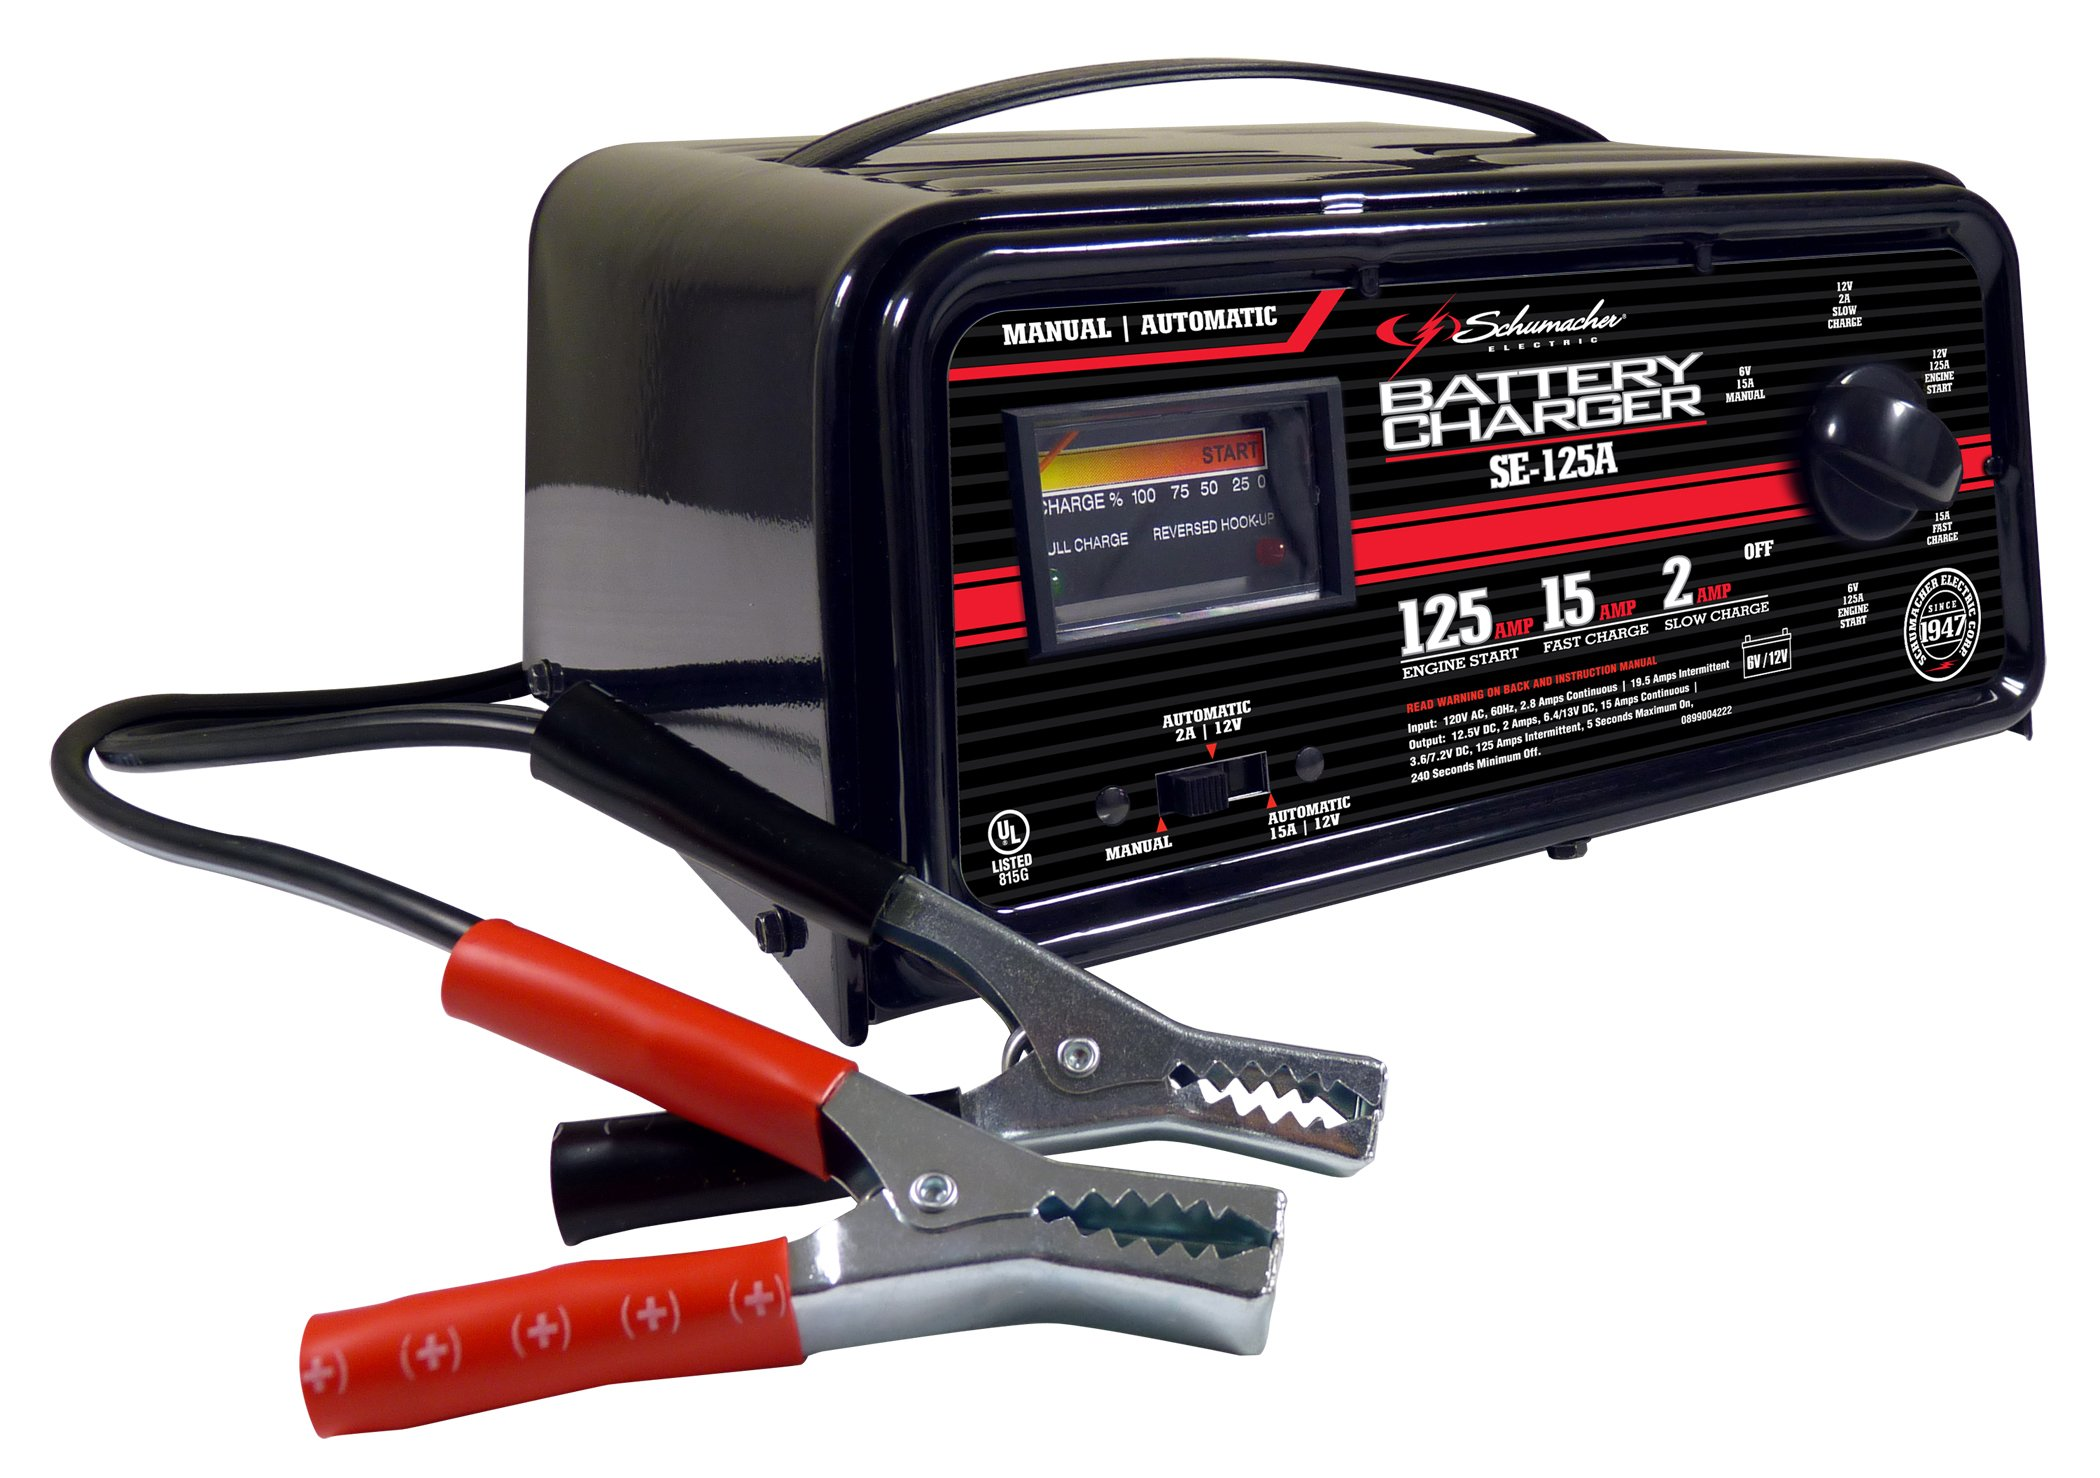 Schumacher SE-125A 2/15/125 Amp Automatic/Manual Battery Charger with Engine Start